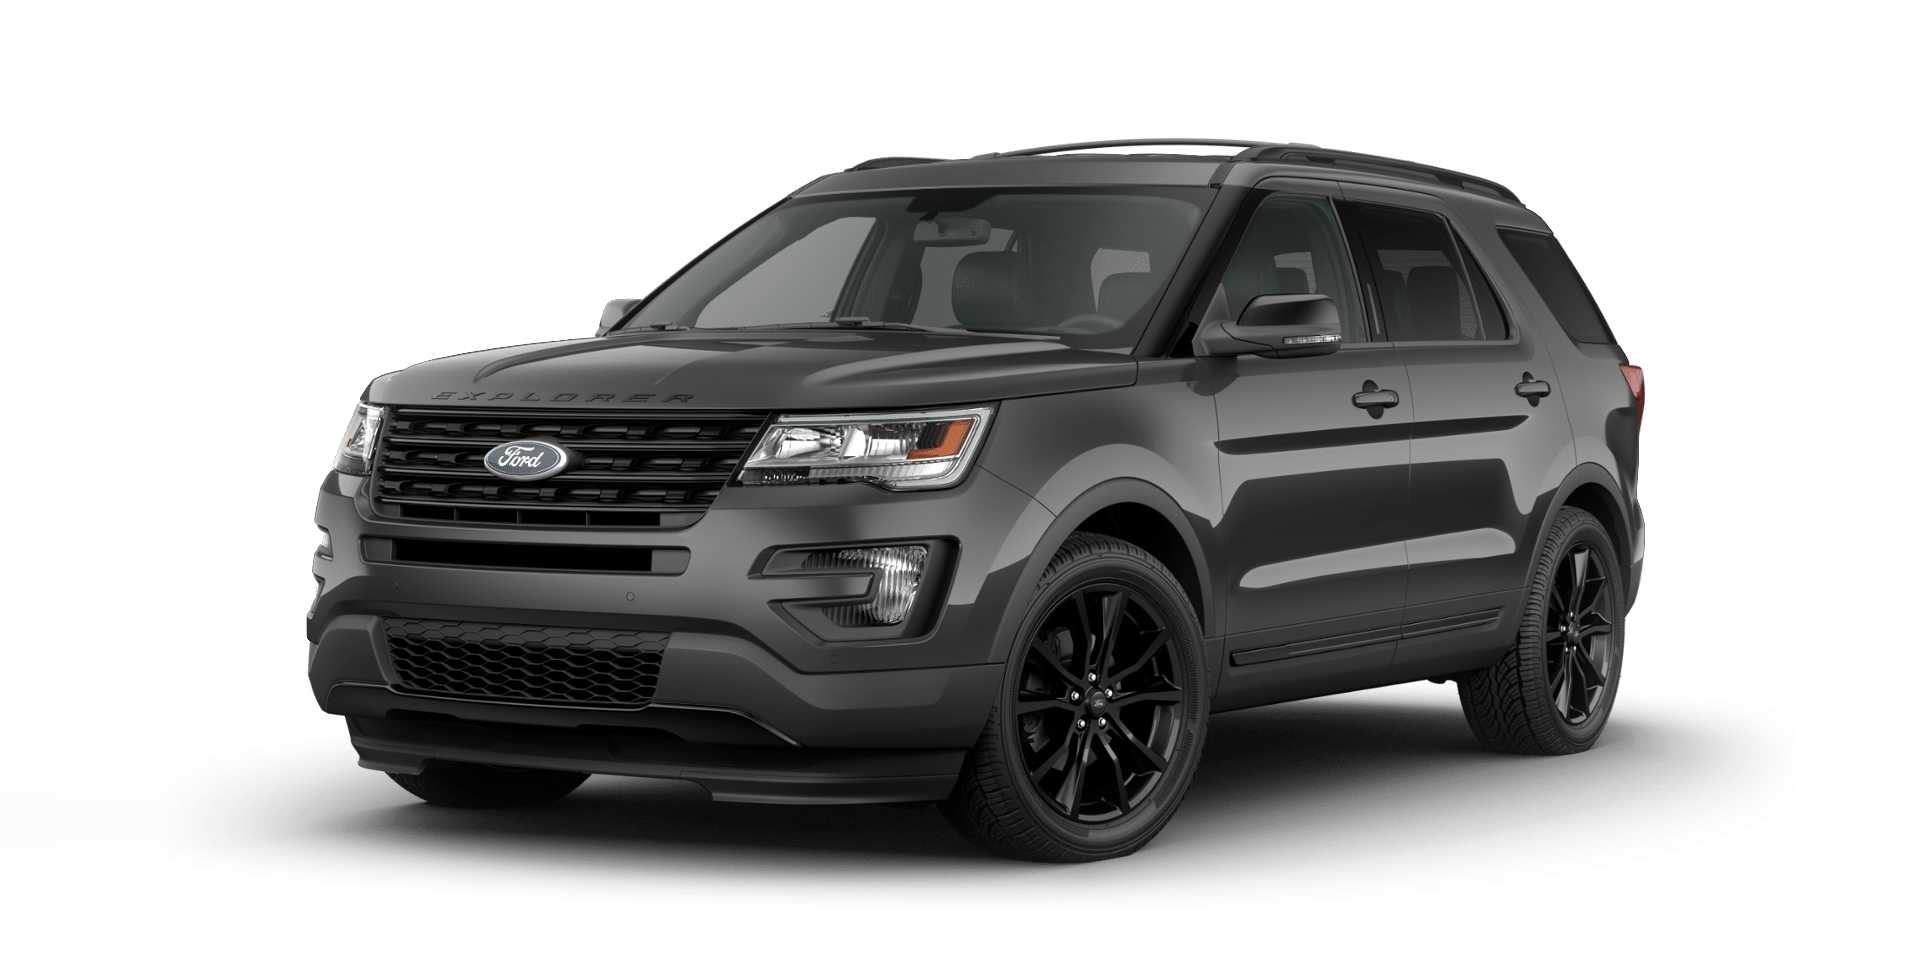 I can't wait till my new car gets here! Ford explorer